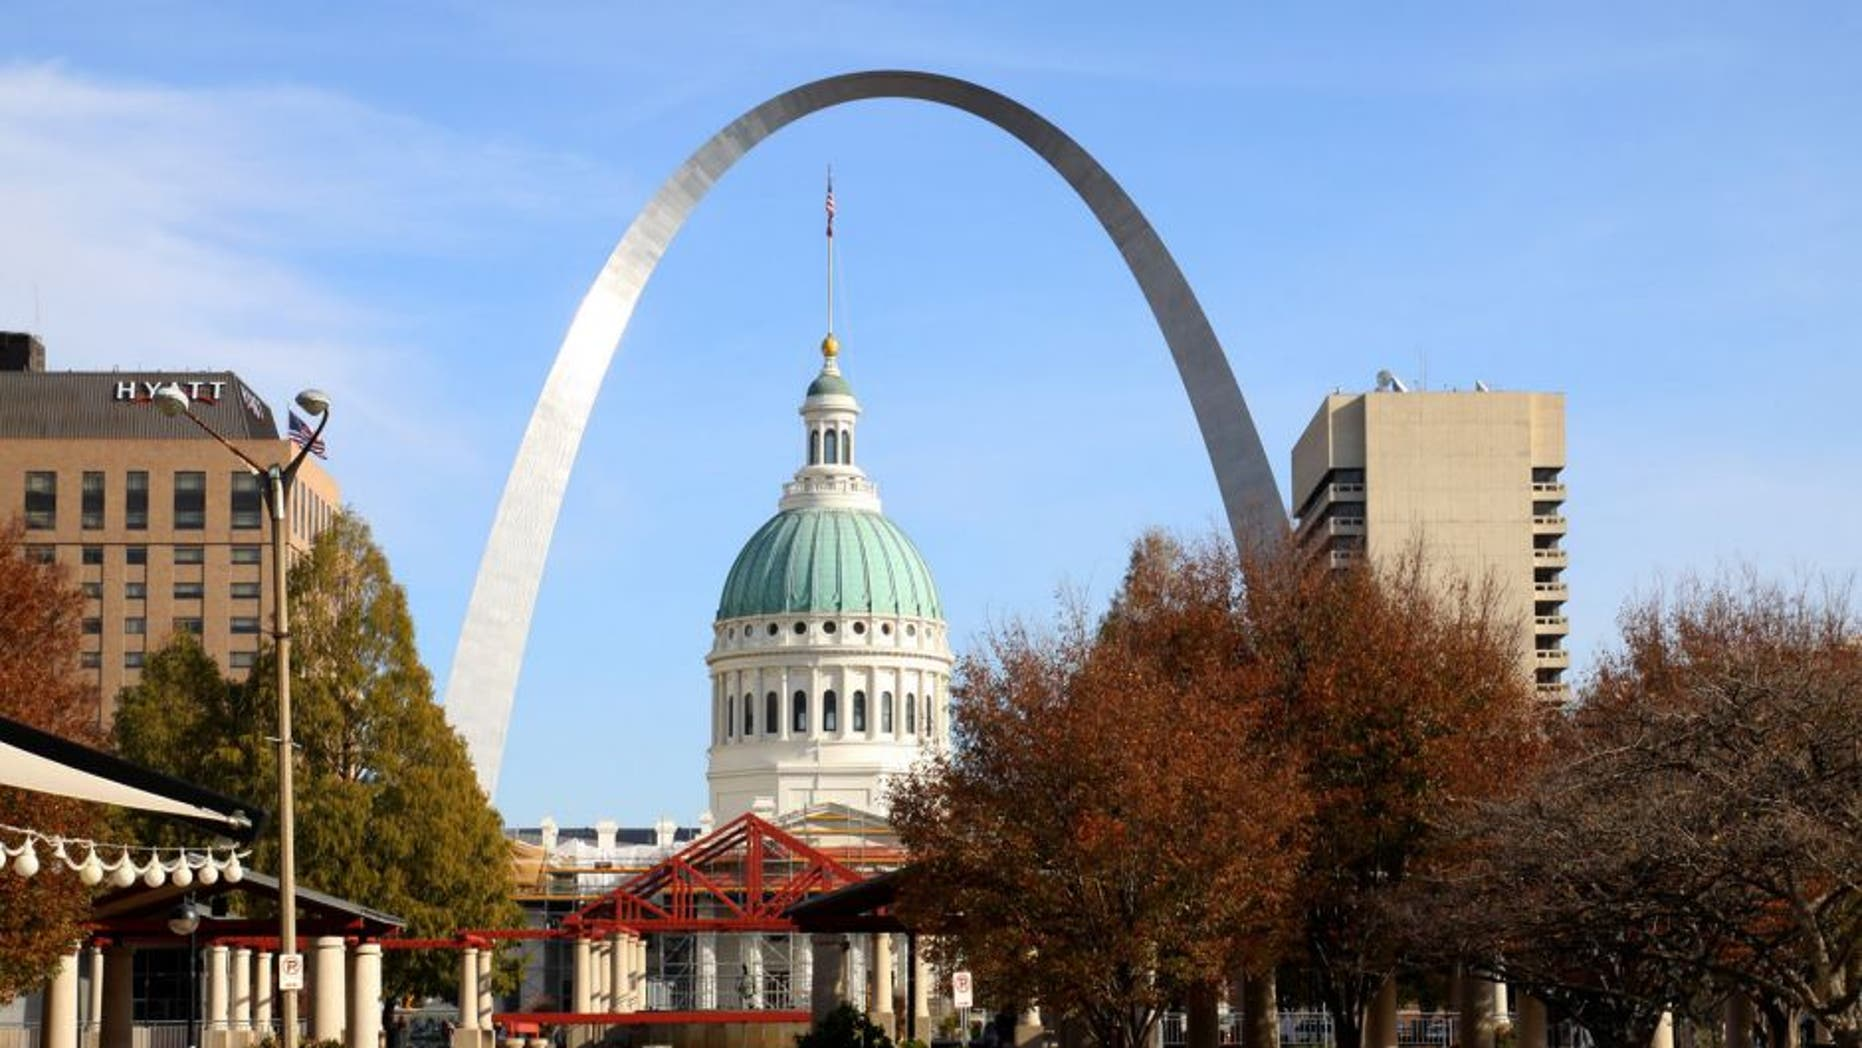 ST. LOUIS, MO - NOVEMBER 02: Old Court House and Gateway Arch, as photographed from Citygarden in St. Louis, Missouri on NOVEMBER 02, 2012. (Photo By Raymond Boyd/Michael Ochs Archives/Getty Images)